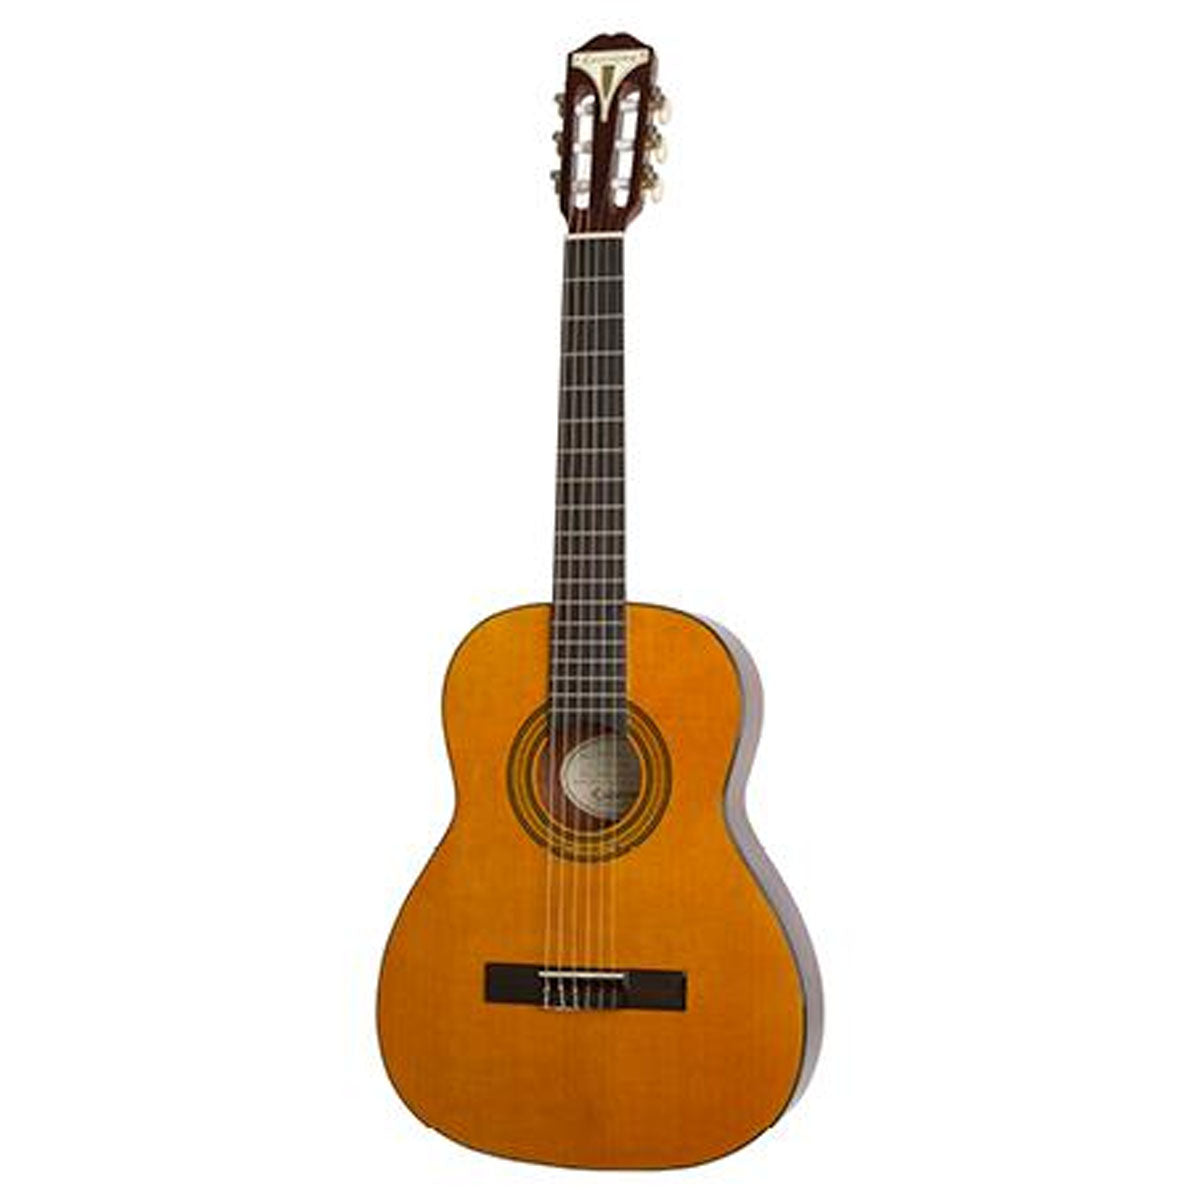 Epiphone PRO-1 Classical Guitar 3/4 Nylon Antique Natural - EAC3ANCH1